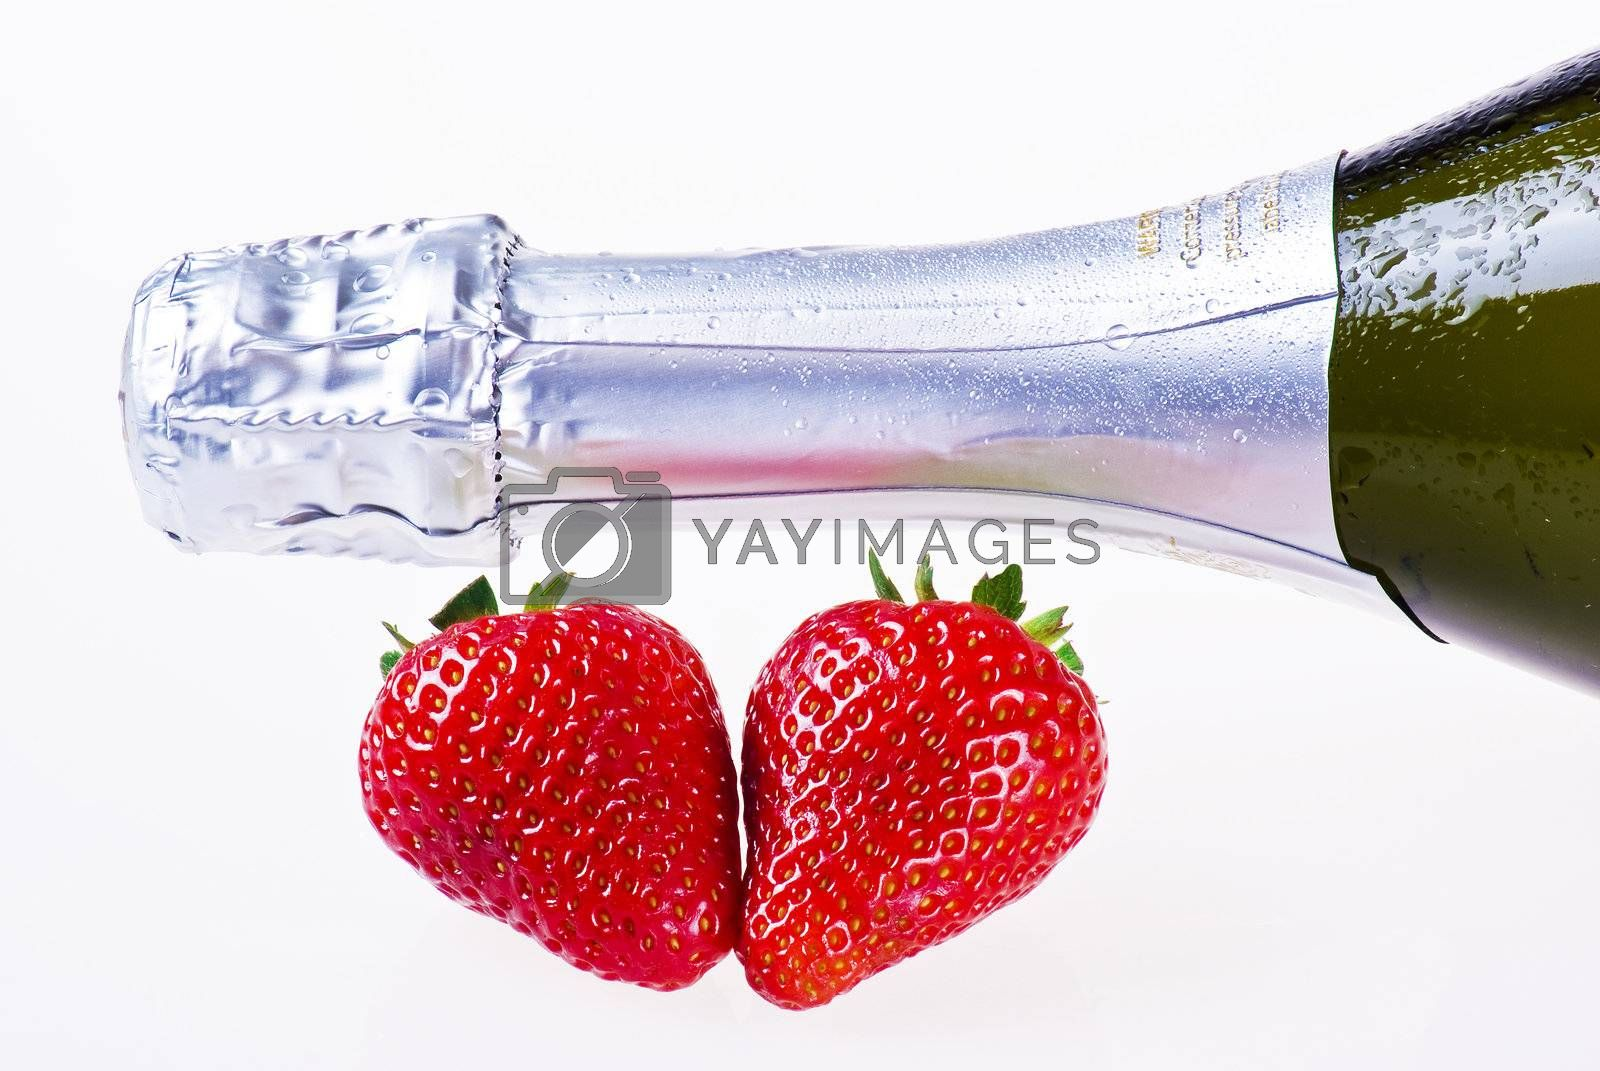 Champagne and strawberries by caldix